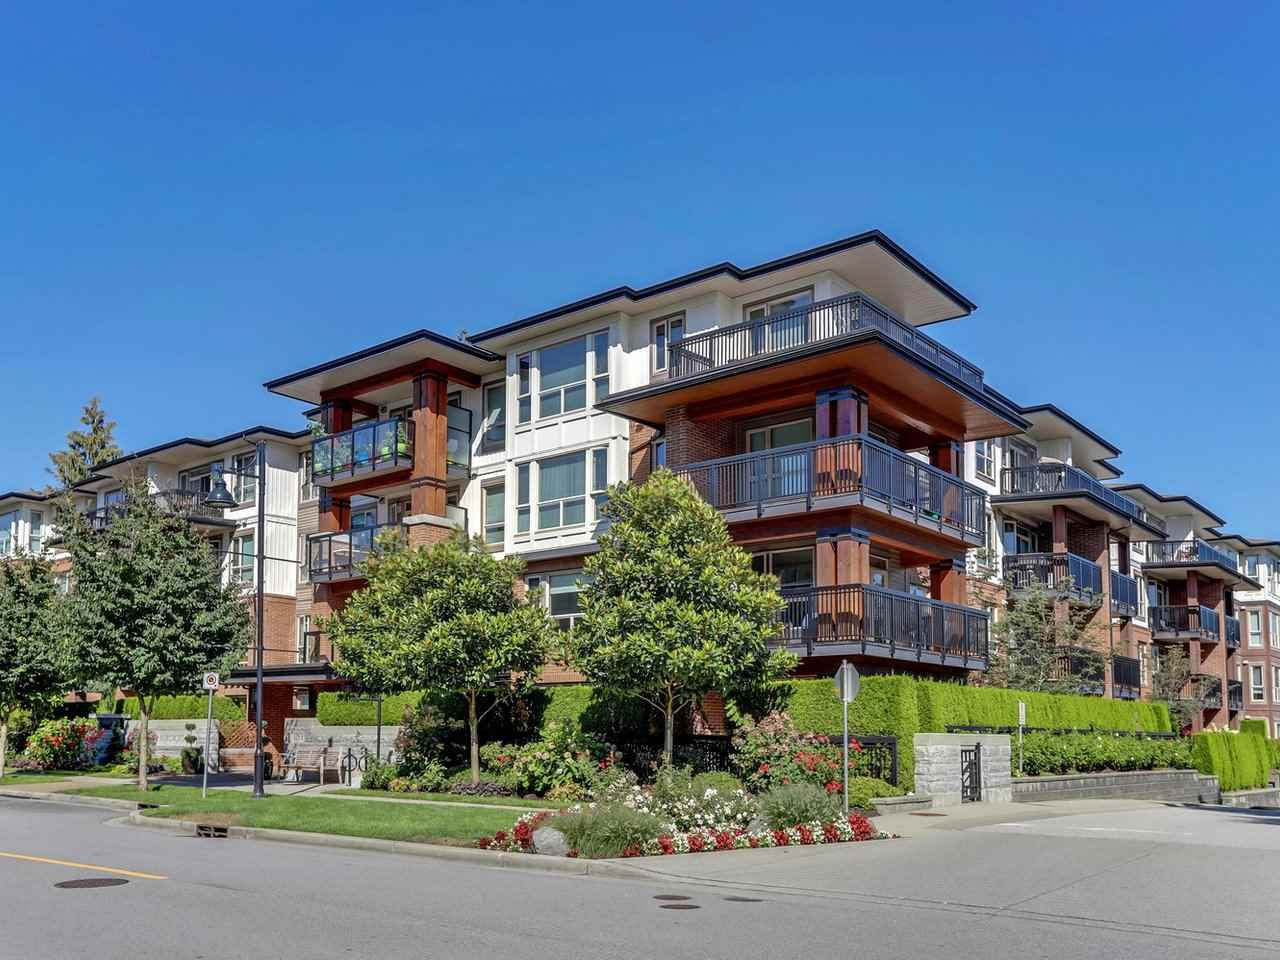 """Main Photo: 409 1153 KENSAL Place in Coquitlam: New Horizons Condo for sale in """"WINDSOR GATE"""" : MLS®# R2325595"""